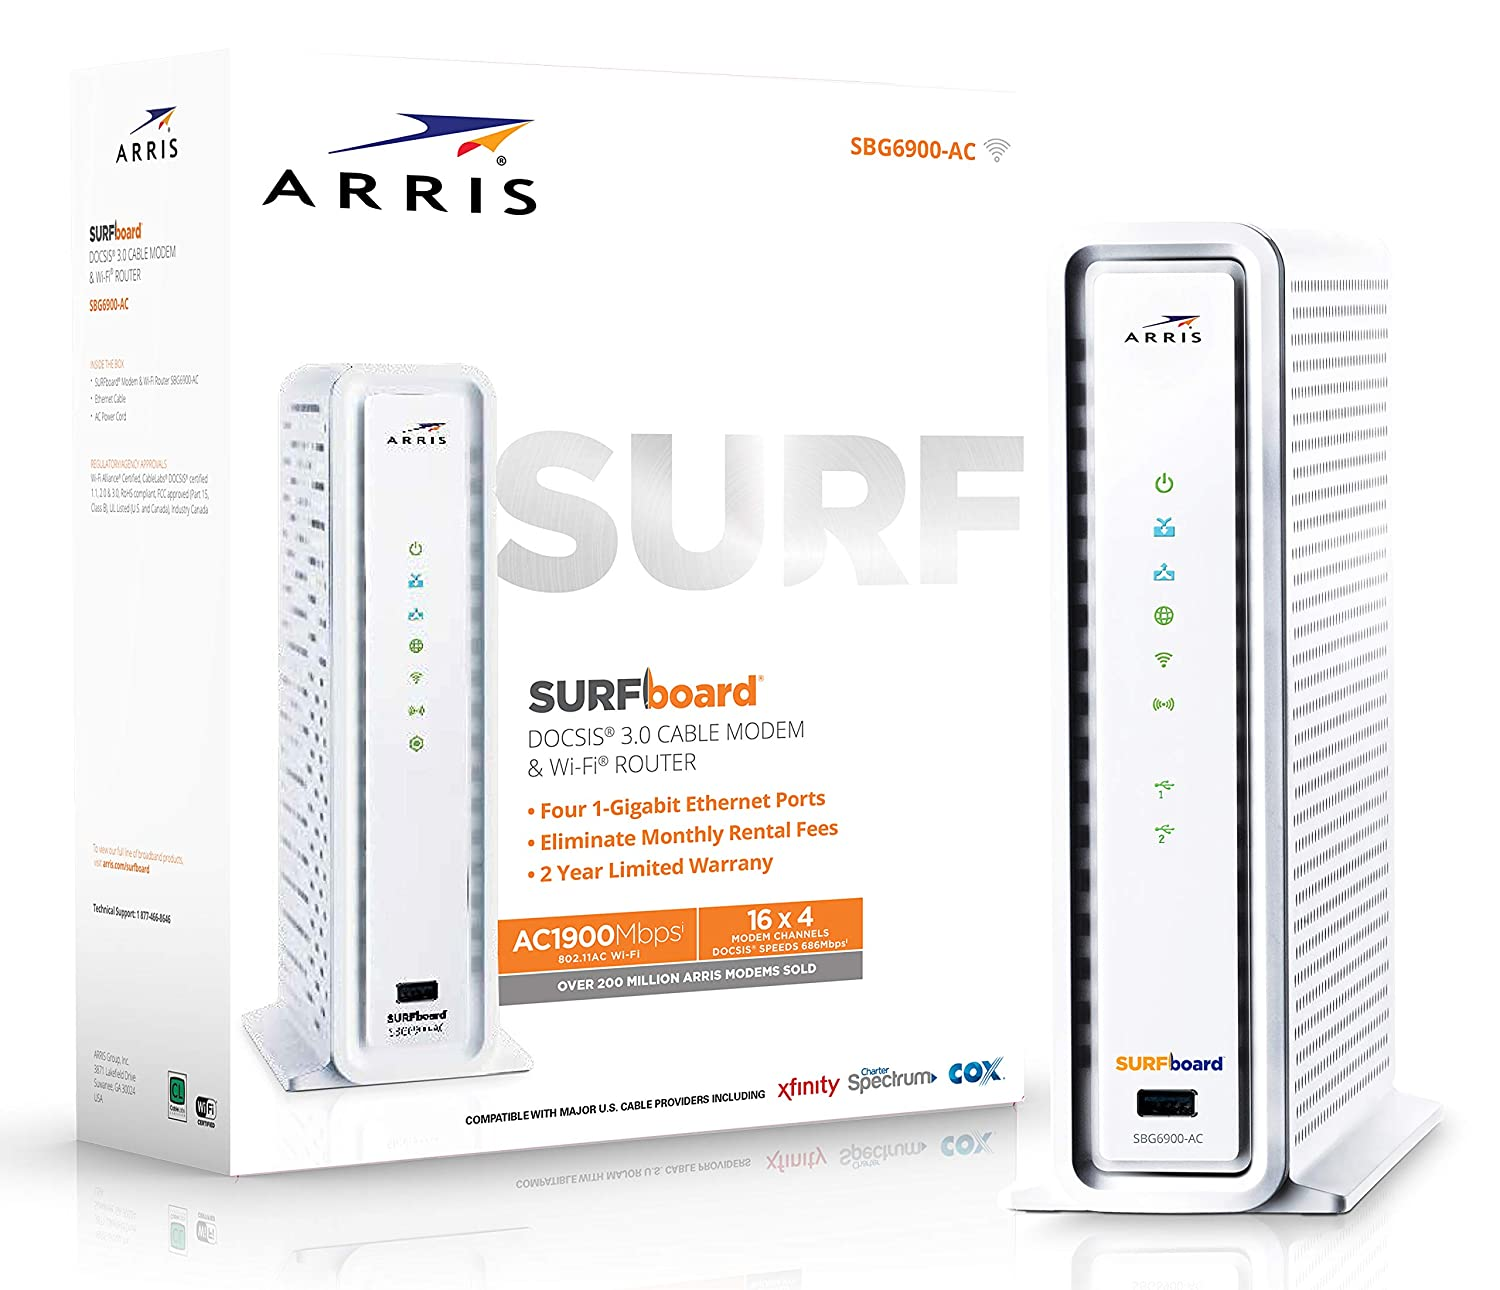 Arris Surfboard Sbg6900ac Docsis 30 16x4 Cable Modem Tg1672 Wiring Diagram Wi Fi Ac1900 Router Retail Packaging White Computers Accessories